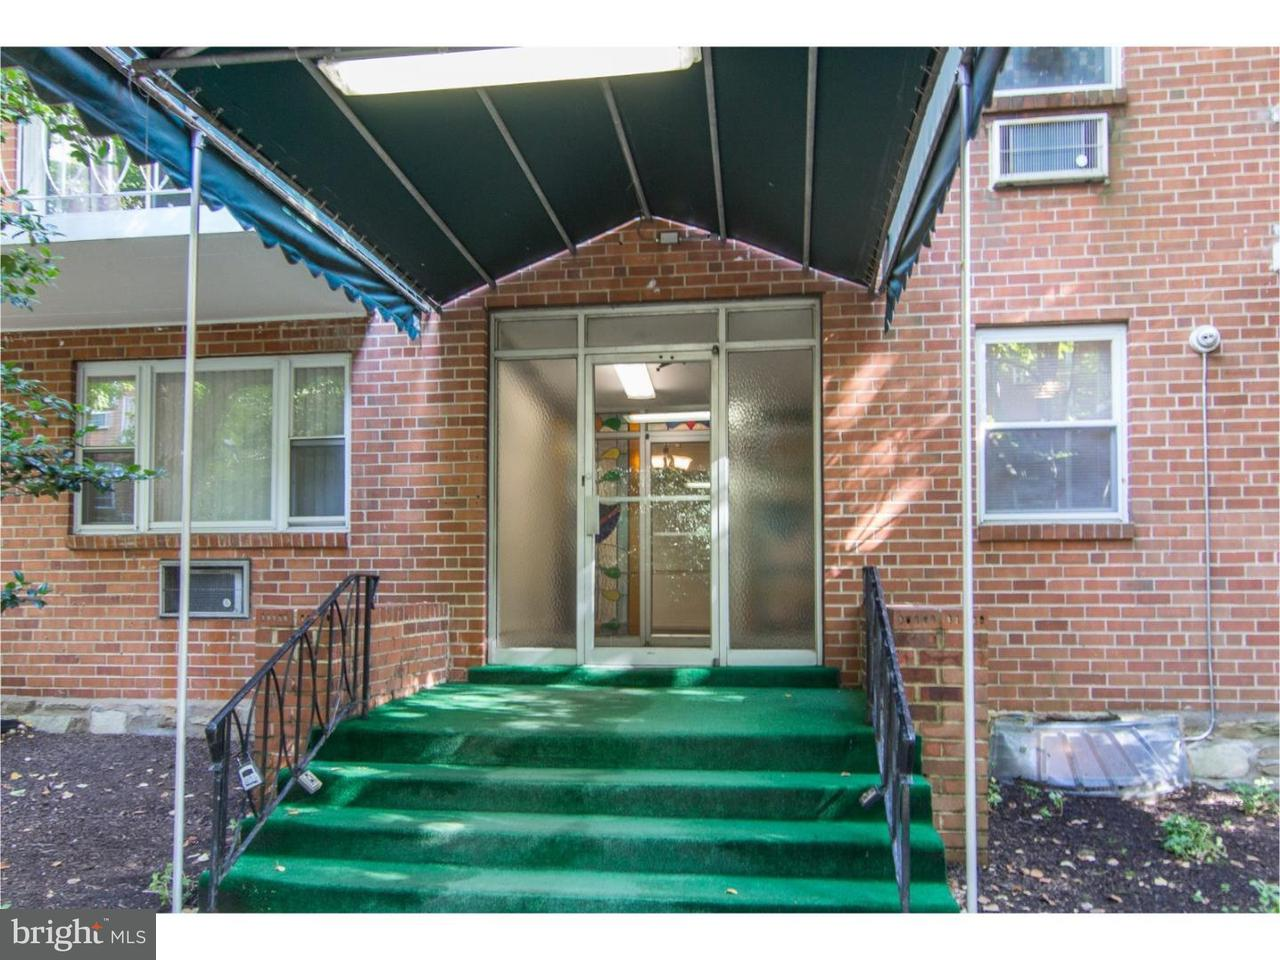 Single Family Home for Rent at 1600 CHURCH RD #C209 Wyncote, Pennsylvania 19095 United States